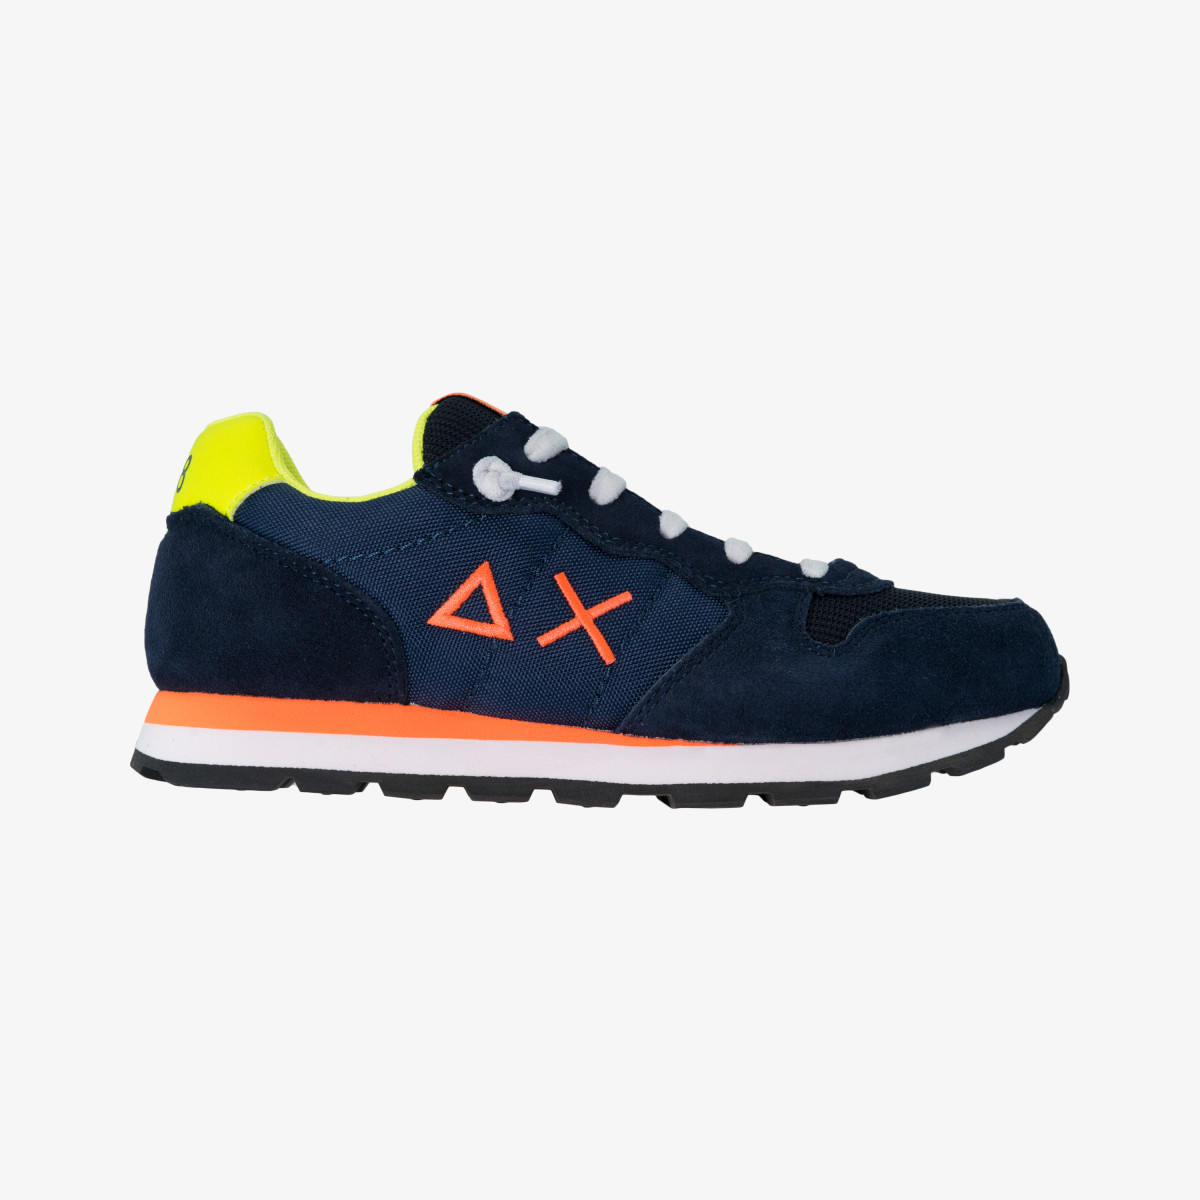 BOY'S TOM FLUO NAVY BLUE